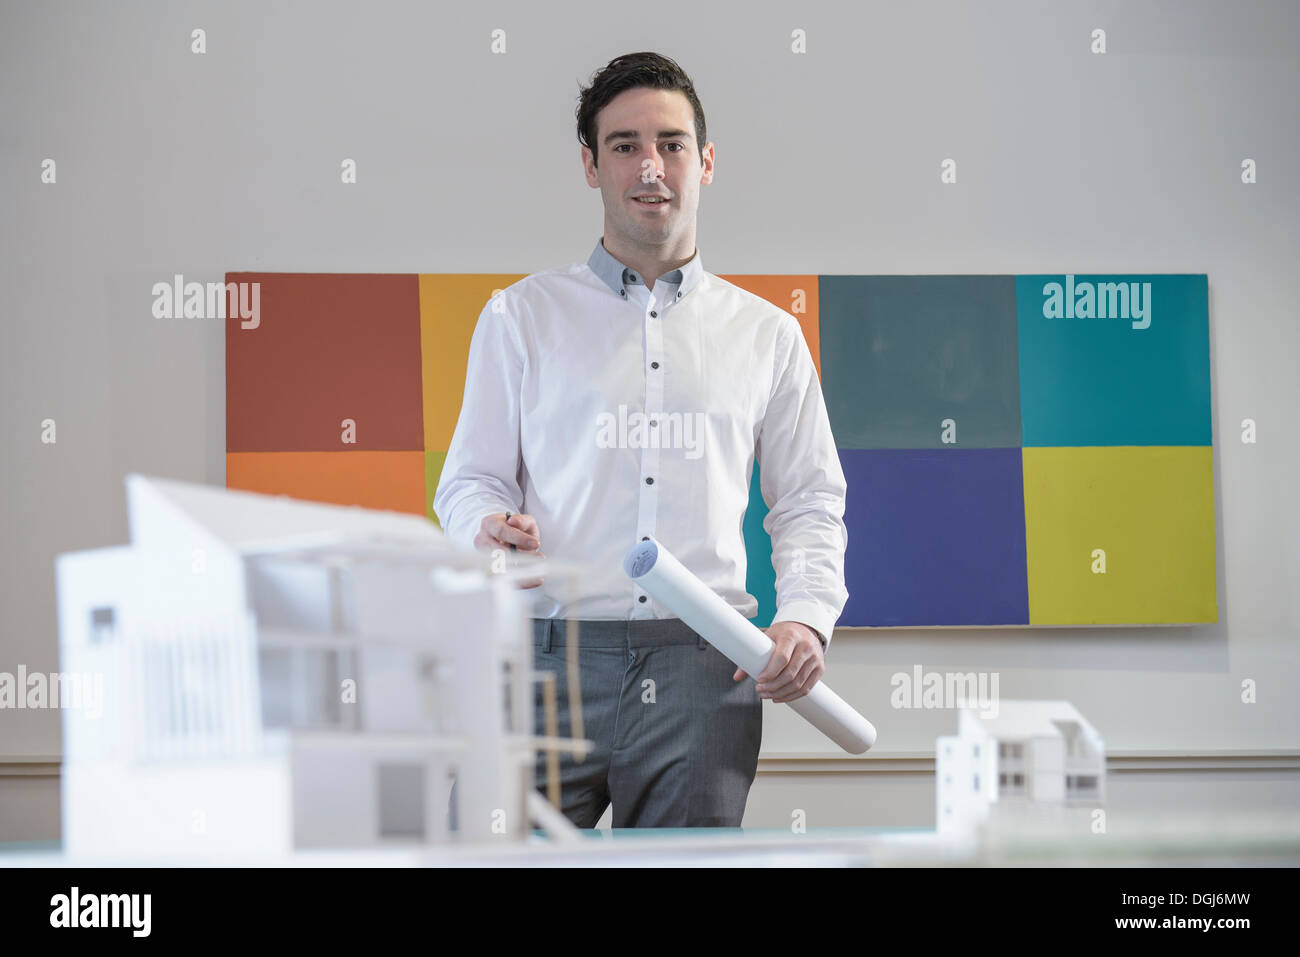 Architect holding plans in office with model buildings - Stock Image